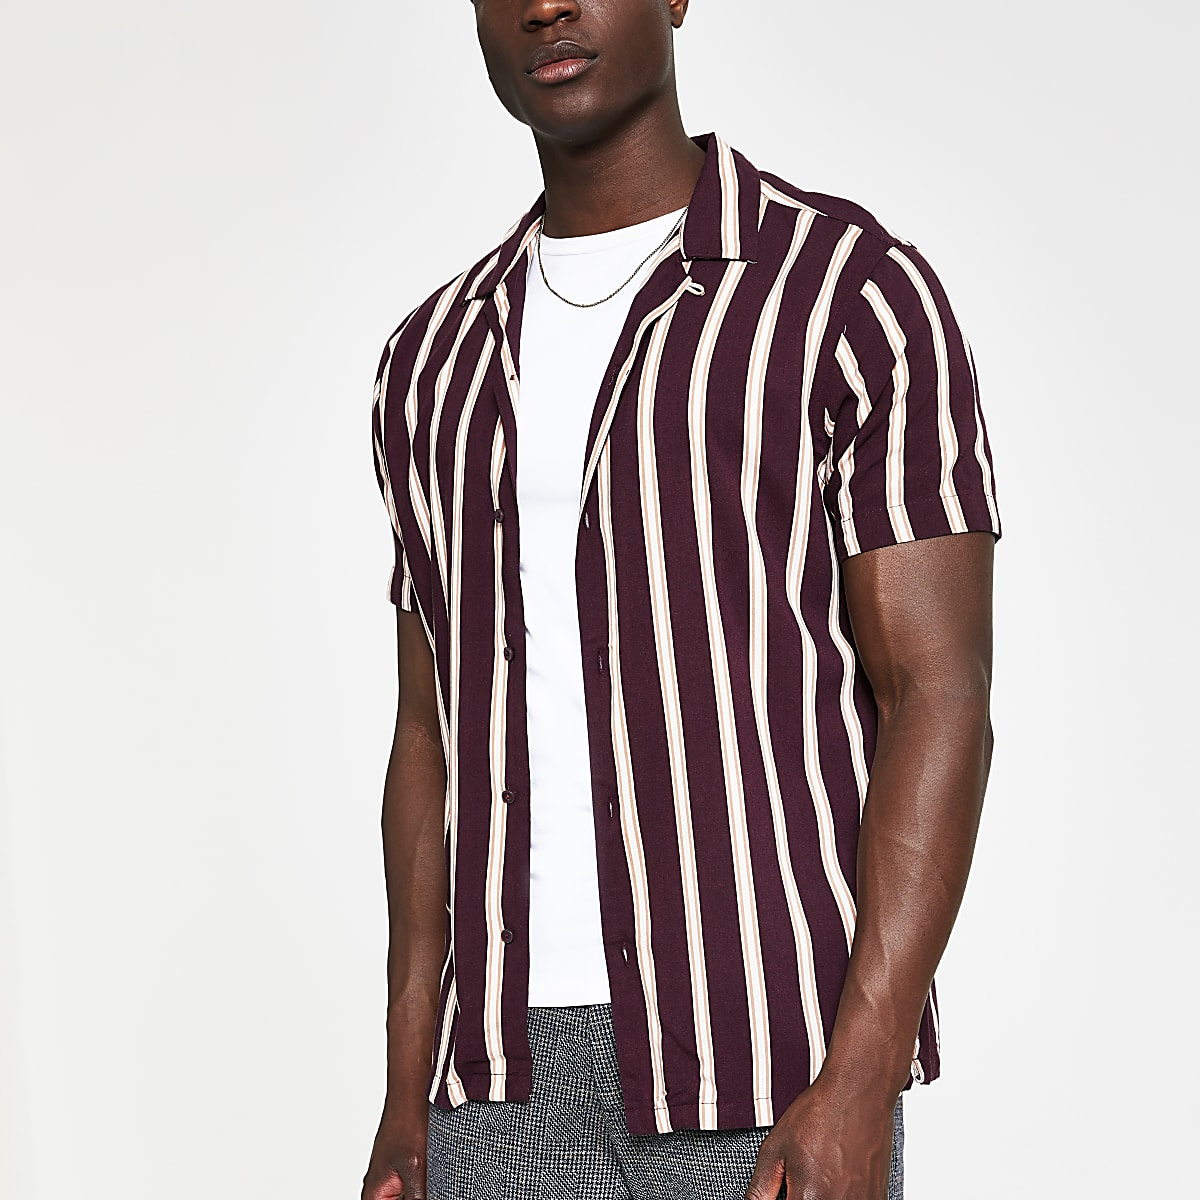 Jack and Jones brown stripe slim fit shirt